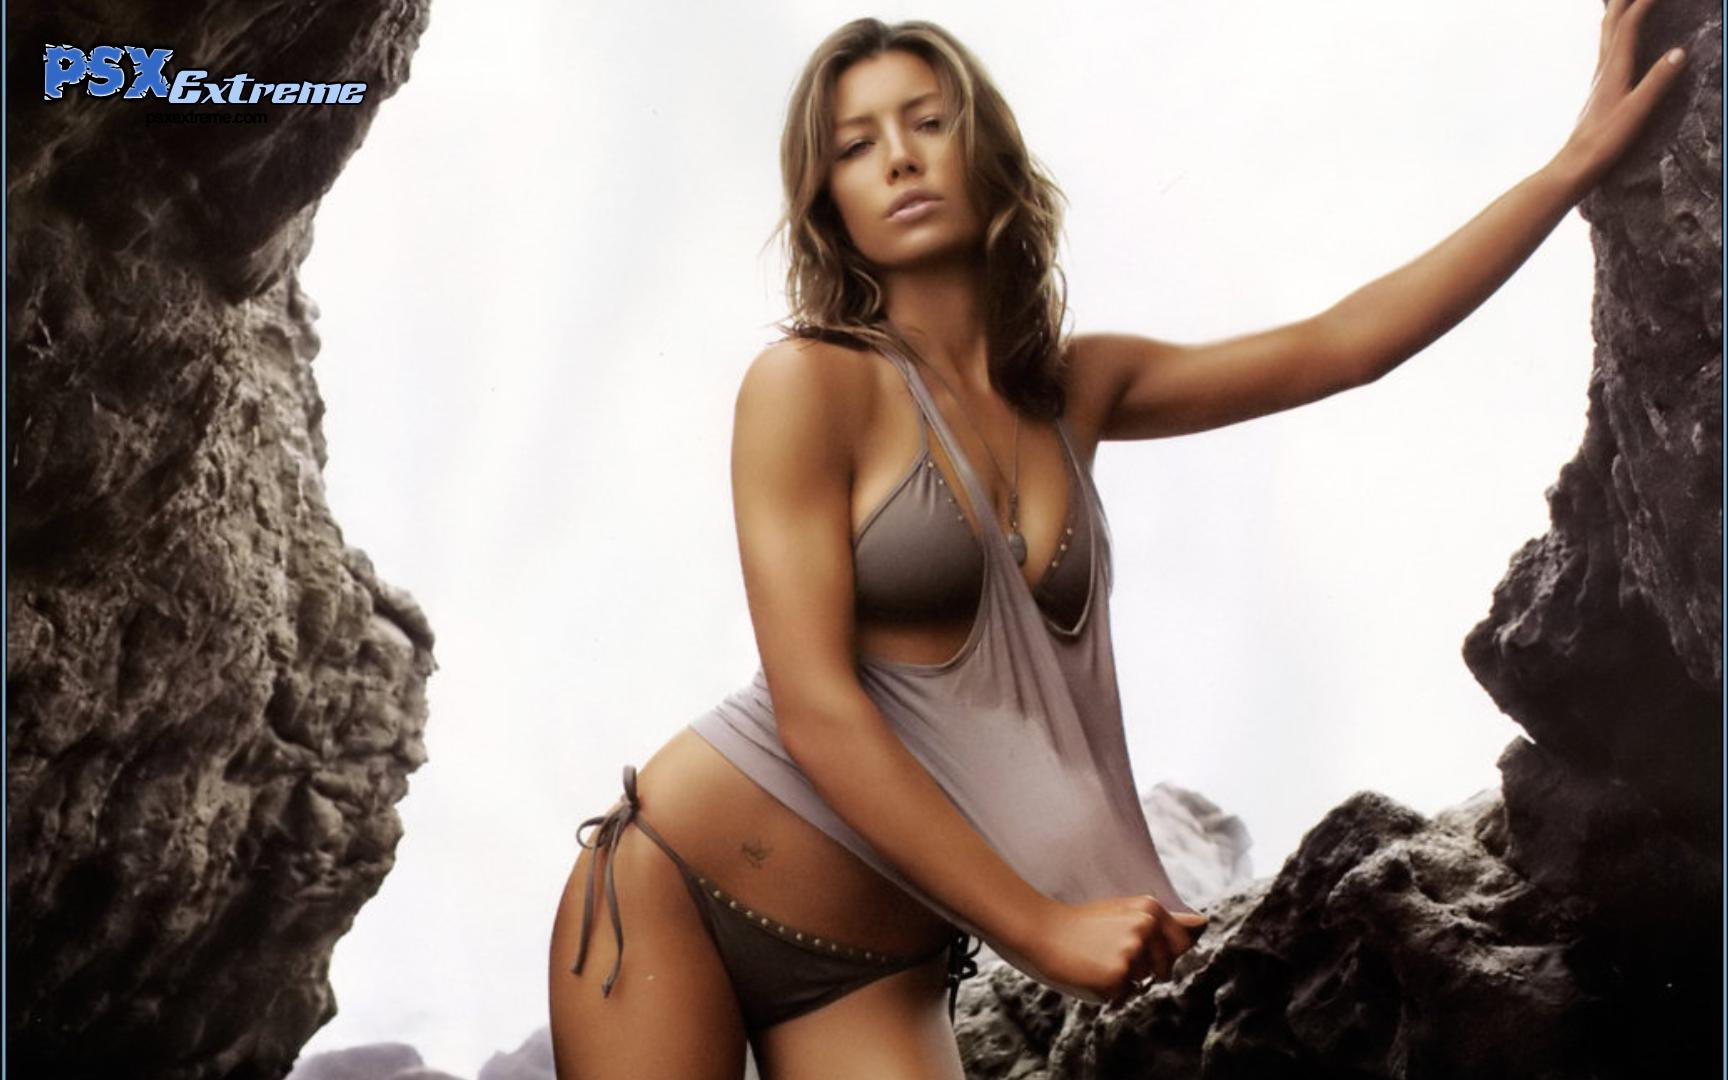 http://images.psxextreme.com/wallpapers/ps3/jessica_biel_02.jpg